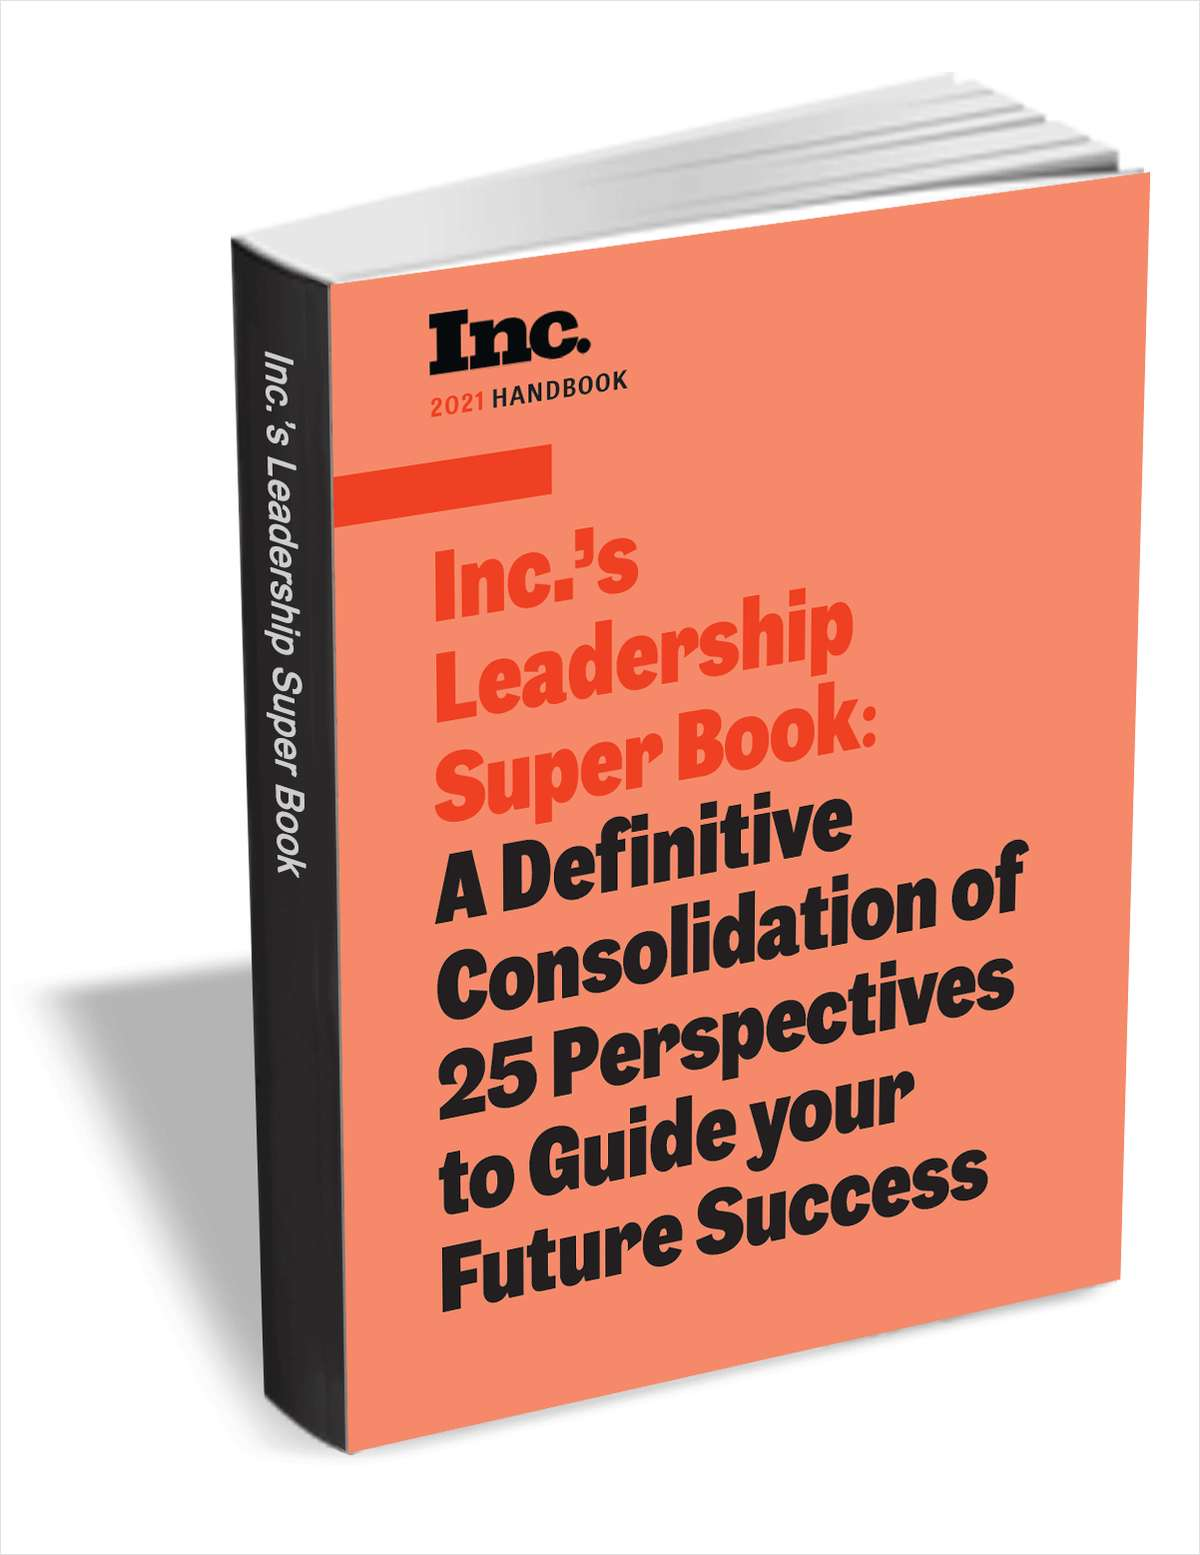 Inc.'s Leadership Super Book: A Definitive Consolidation of 25 Perspectives to Guide your Future Success